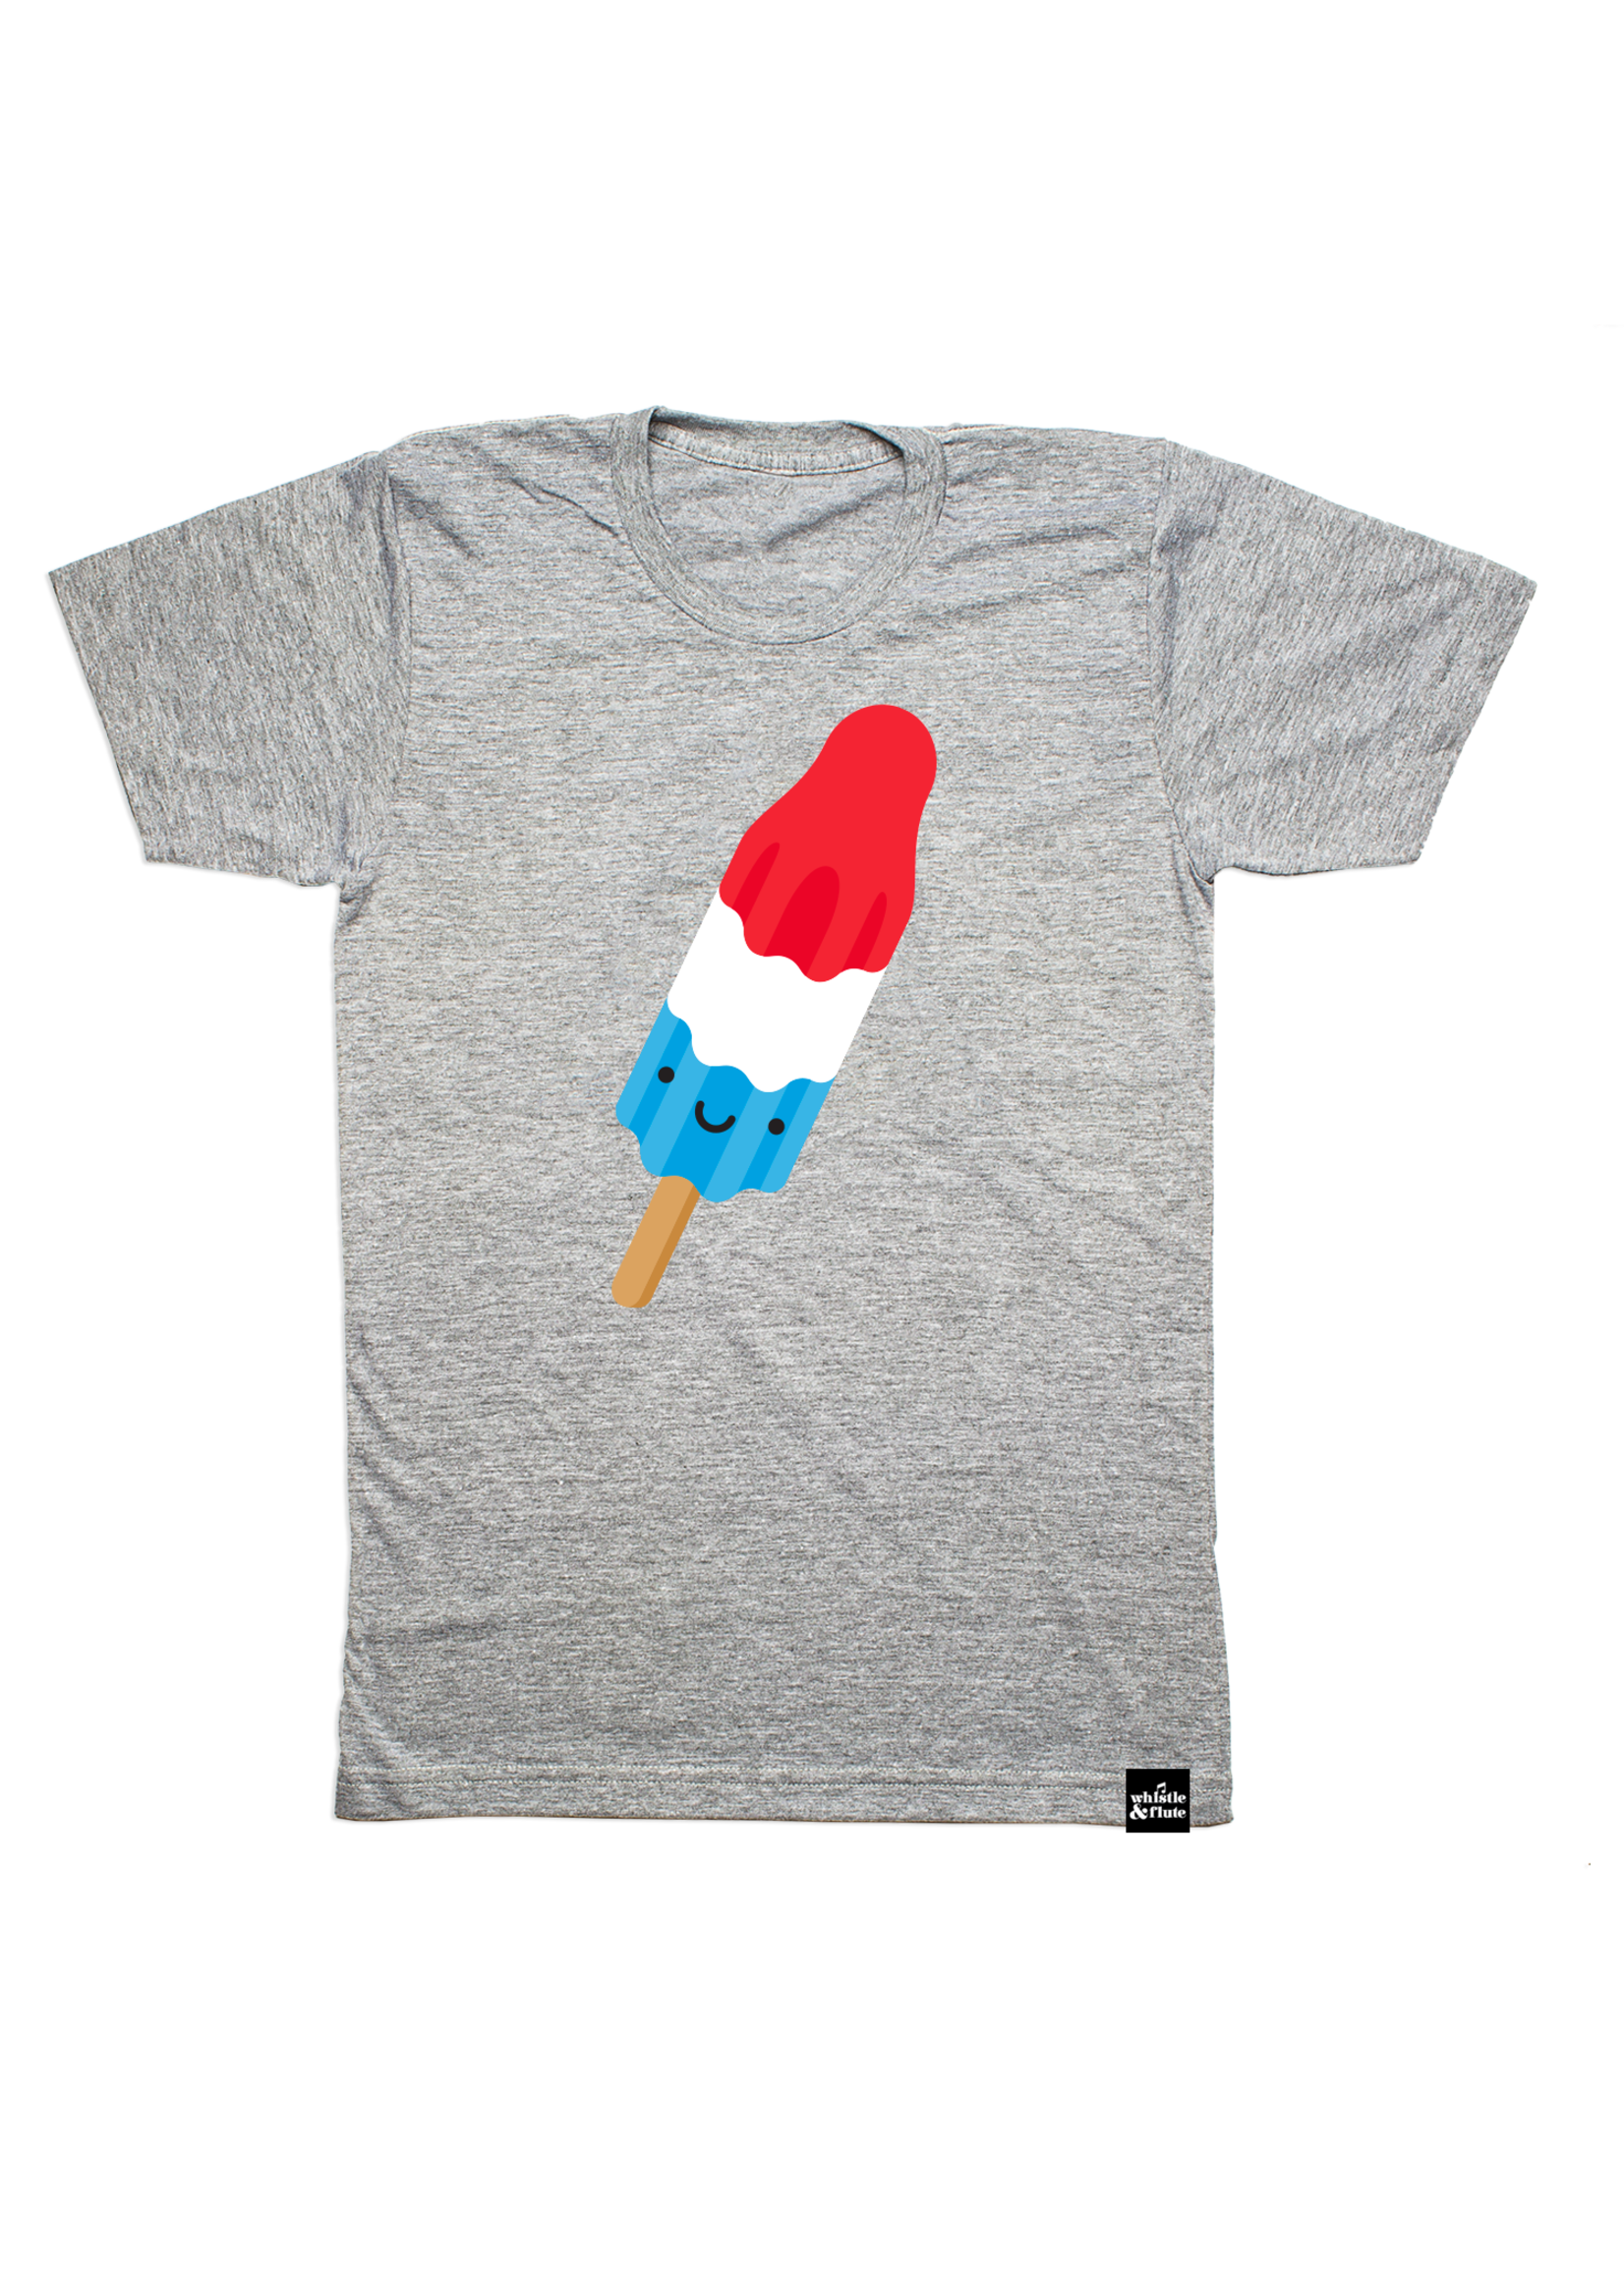 Whistle & Flute Whistle & Flute Kawaii Space Pop Tee